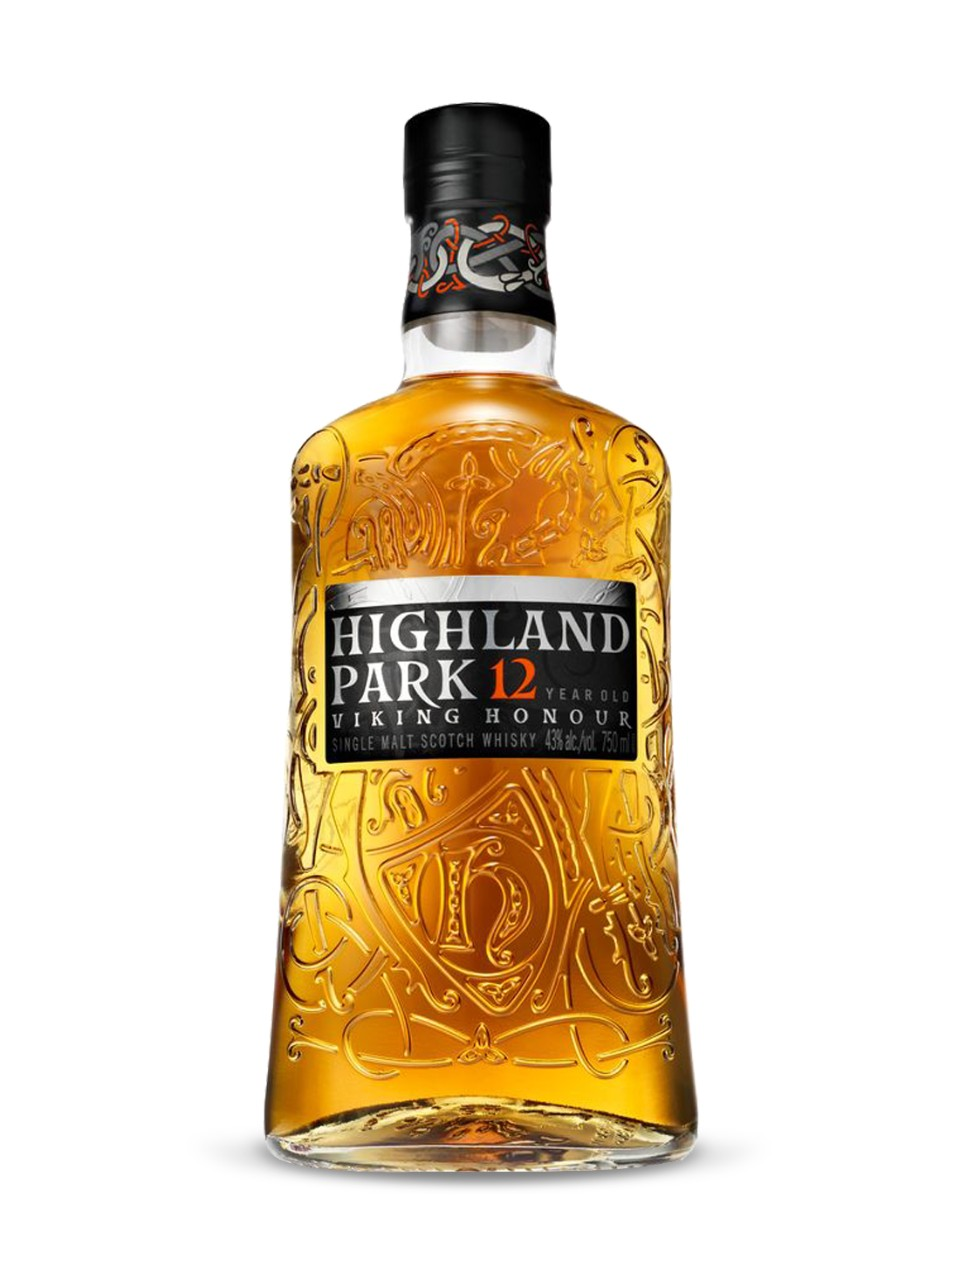 Highland Park Viking Honour 12 Year Old Single Malt Scotch Whisky from LCBO